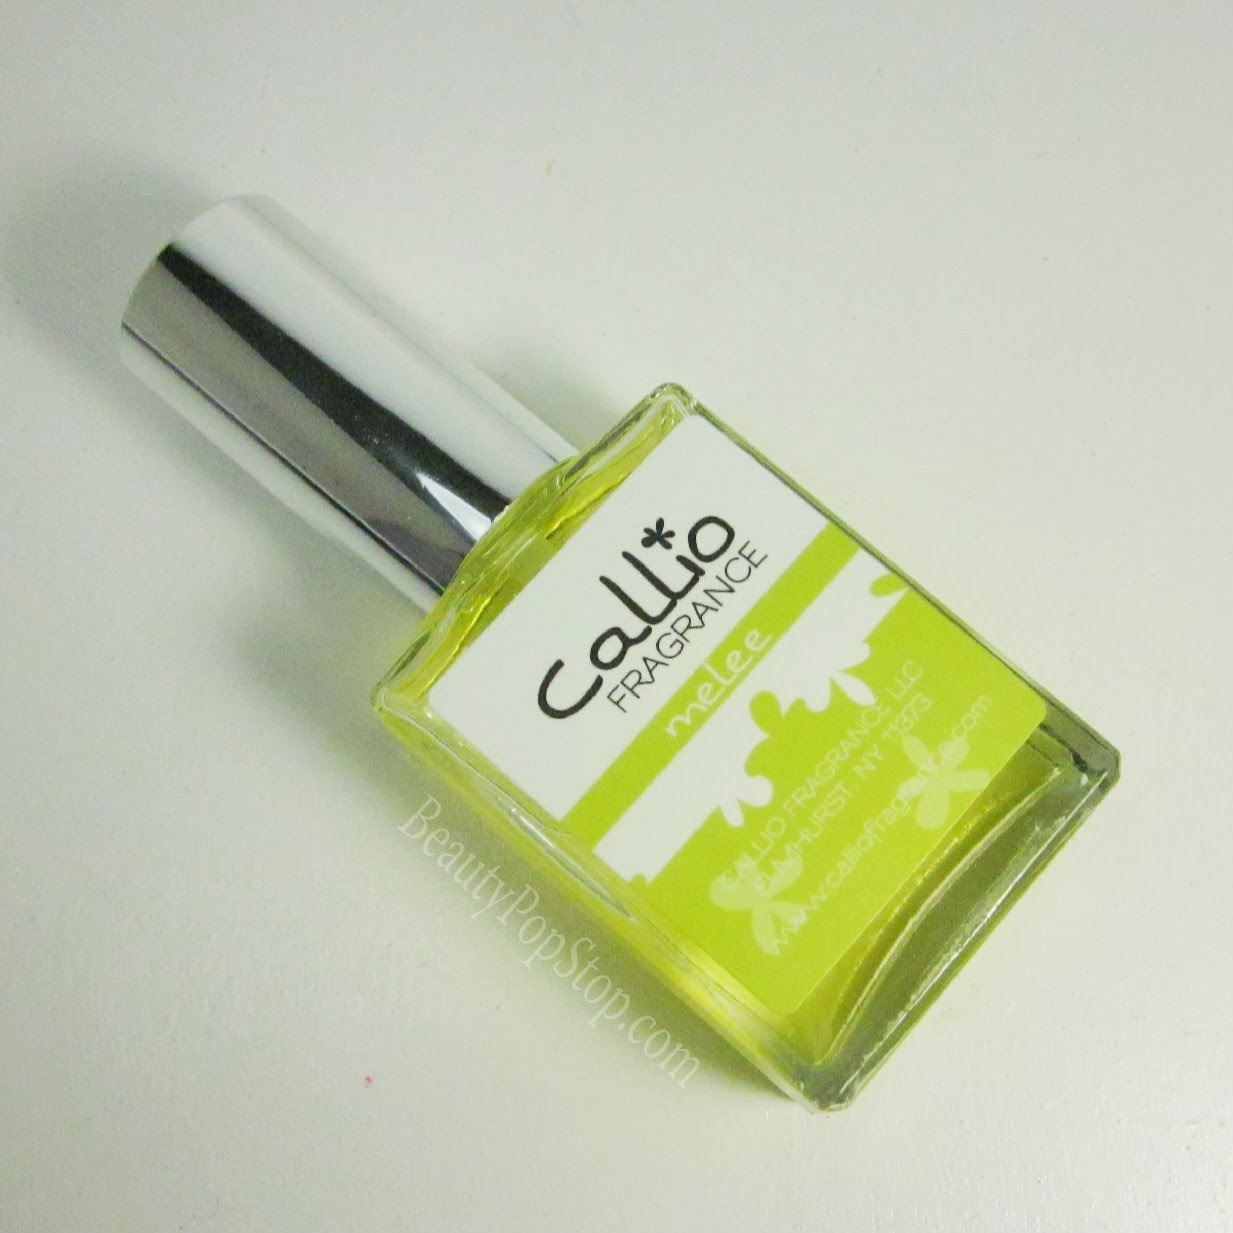 callio fragrance melee perfume review